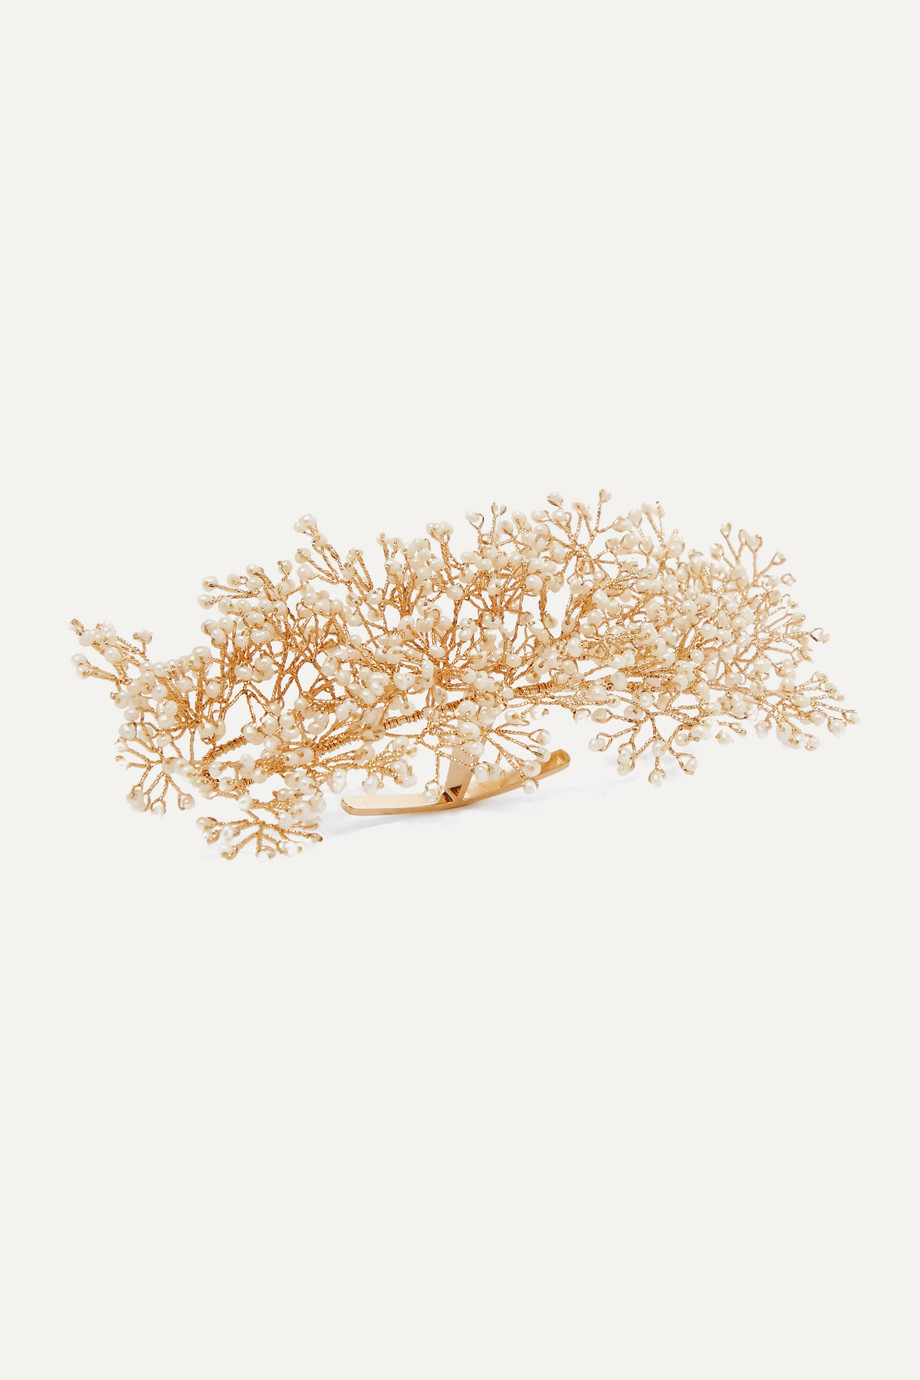 14 / Quatorze Baby's Breath gold-plated pearl ring cuff